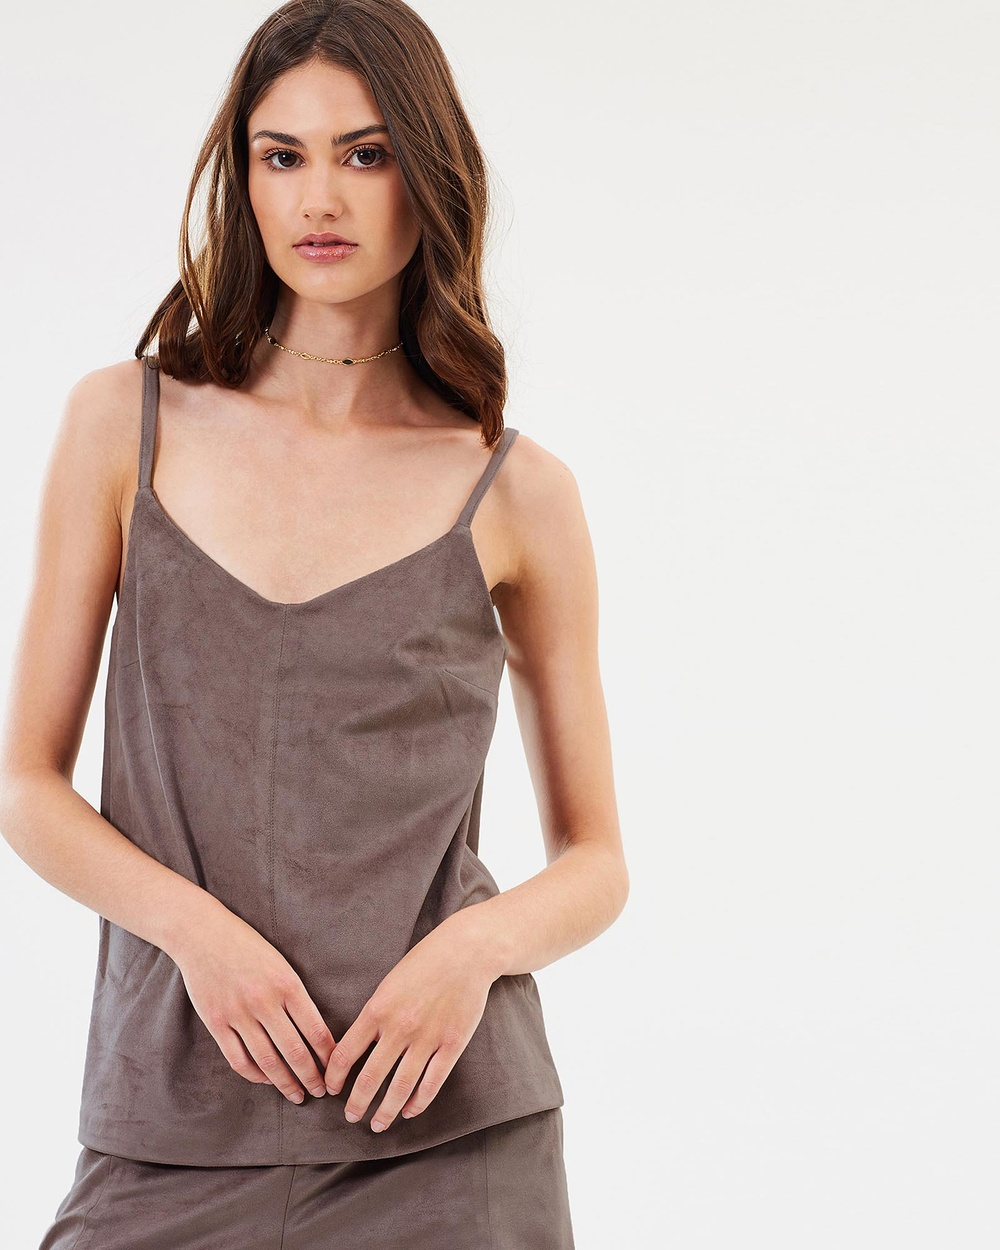 Unreal Fur Dancer Suede Cami Tops Brown Dancer Suede Cami